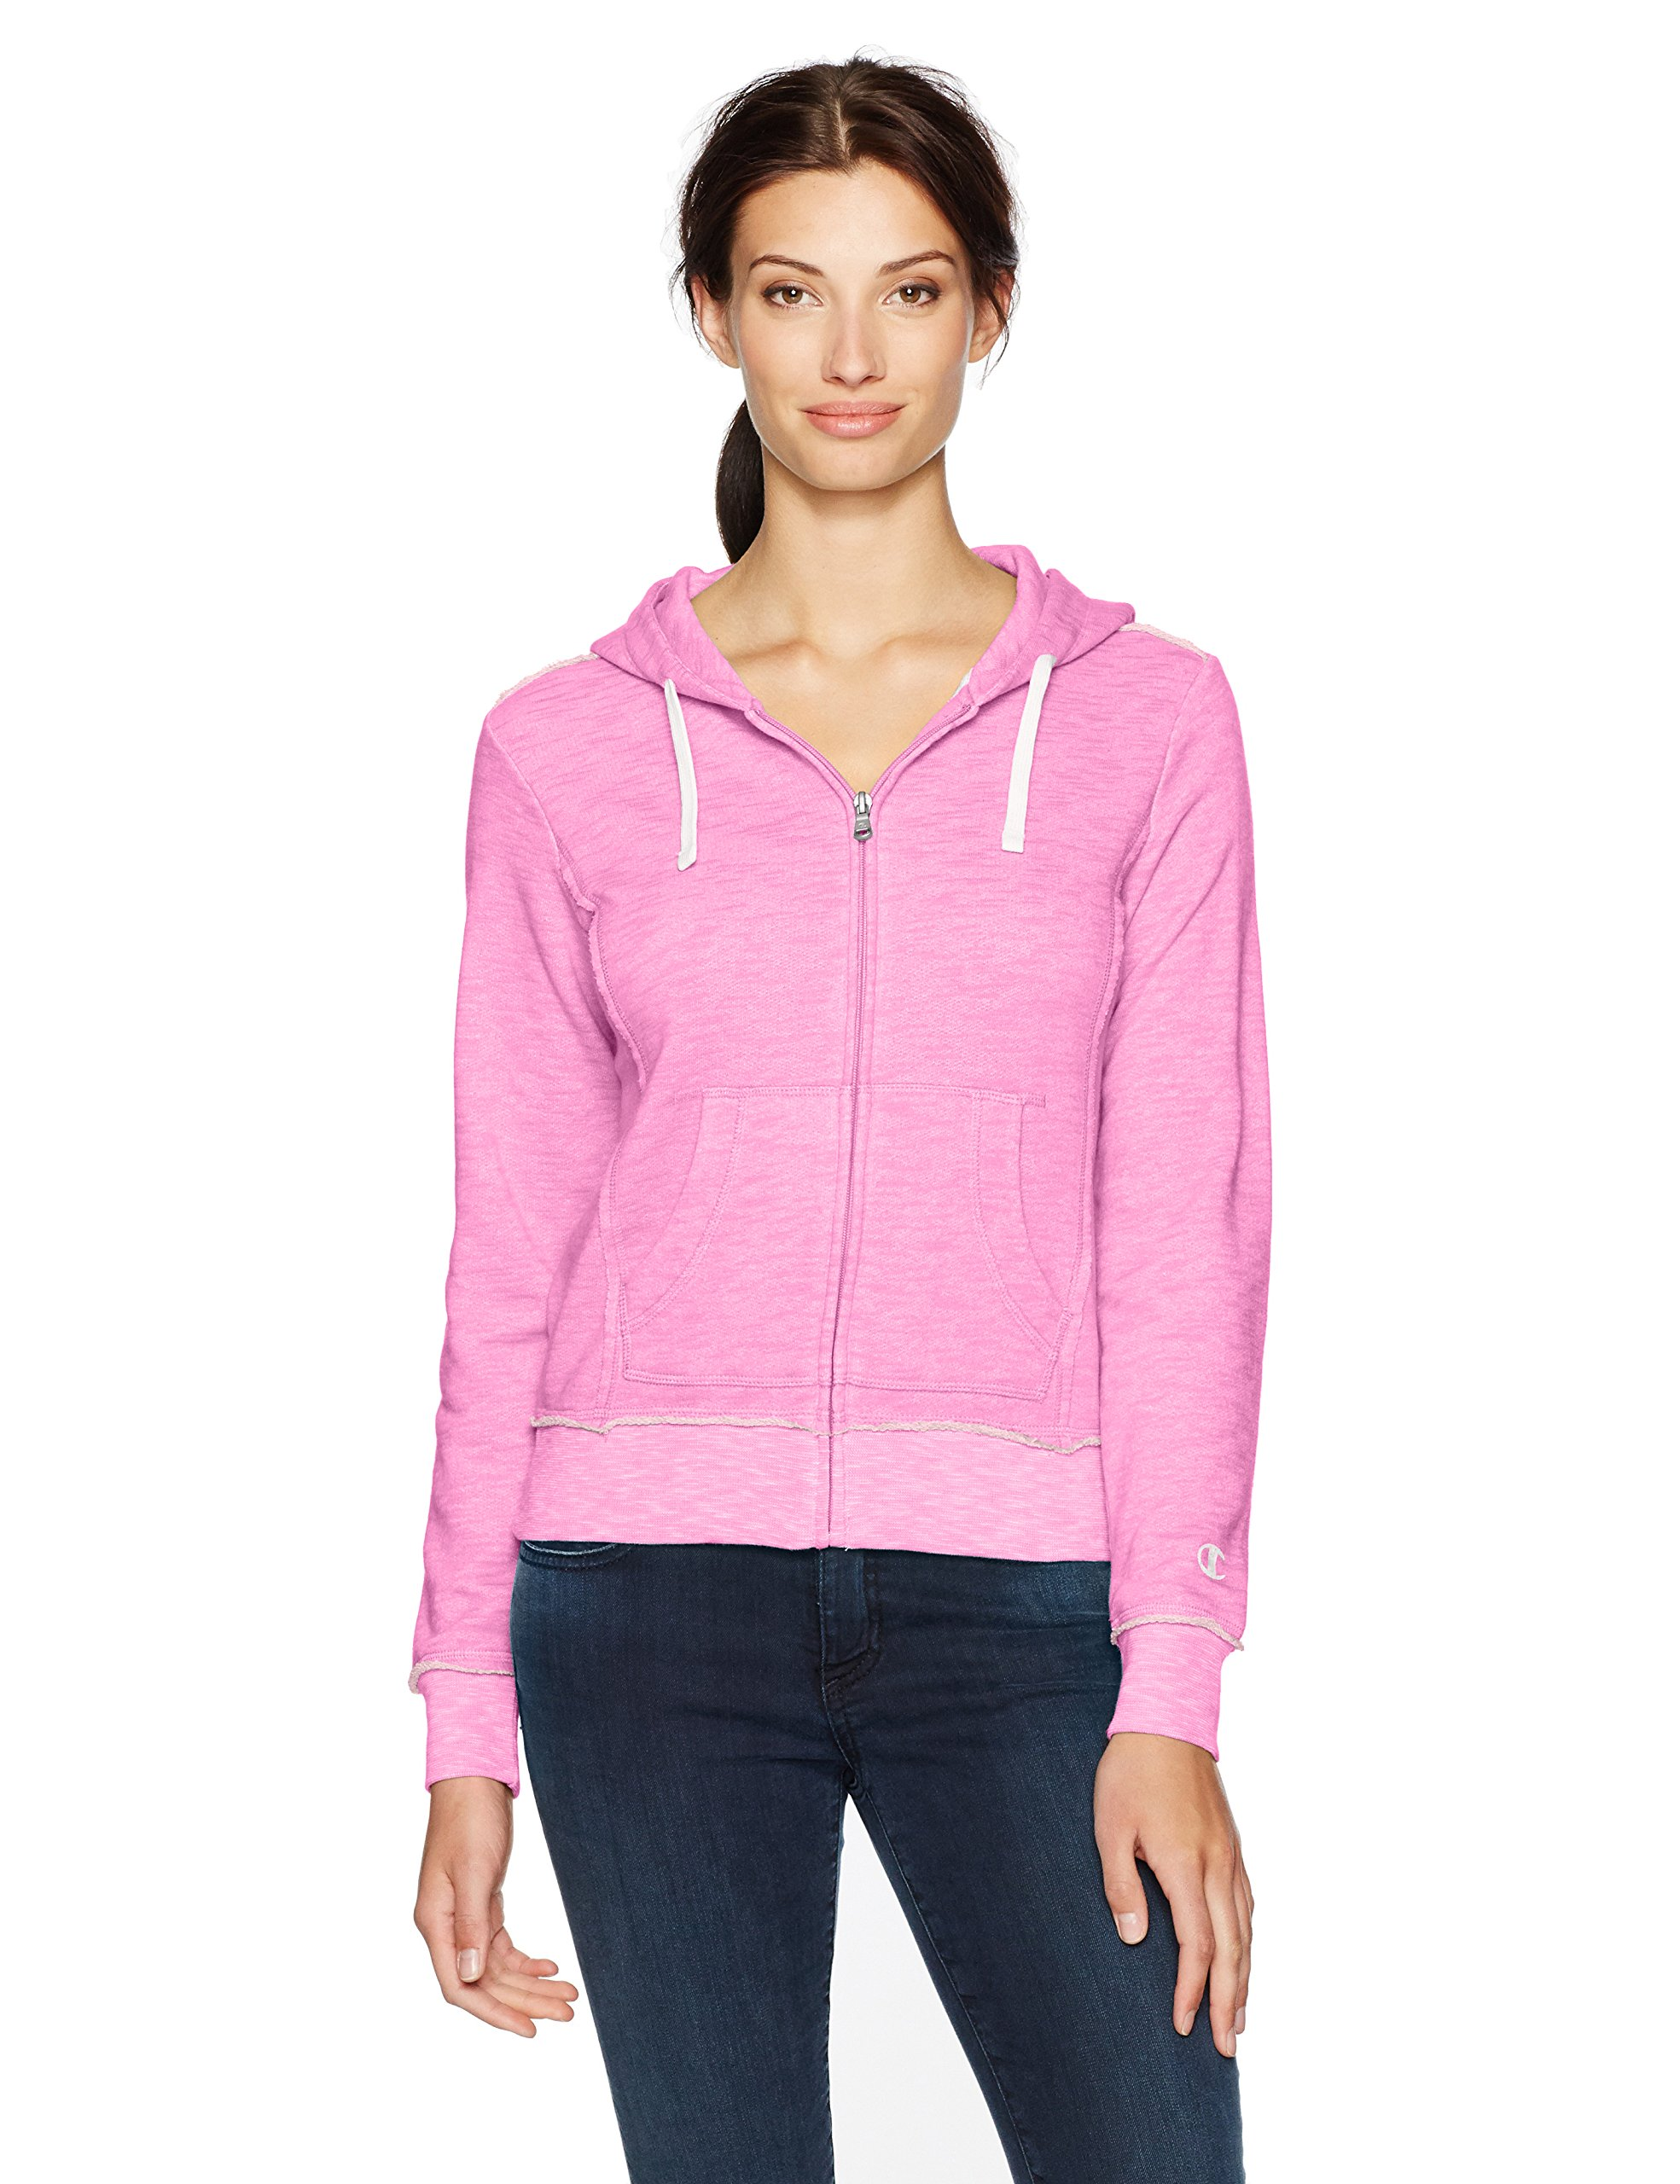 Champion Women's Distressed Full Zip Hoodie (Edition), Pink, M by Champion